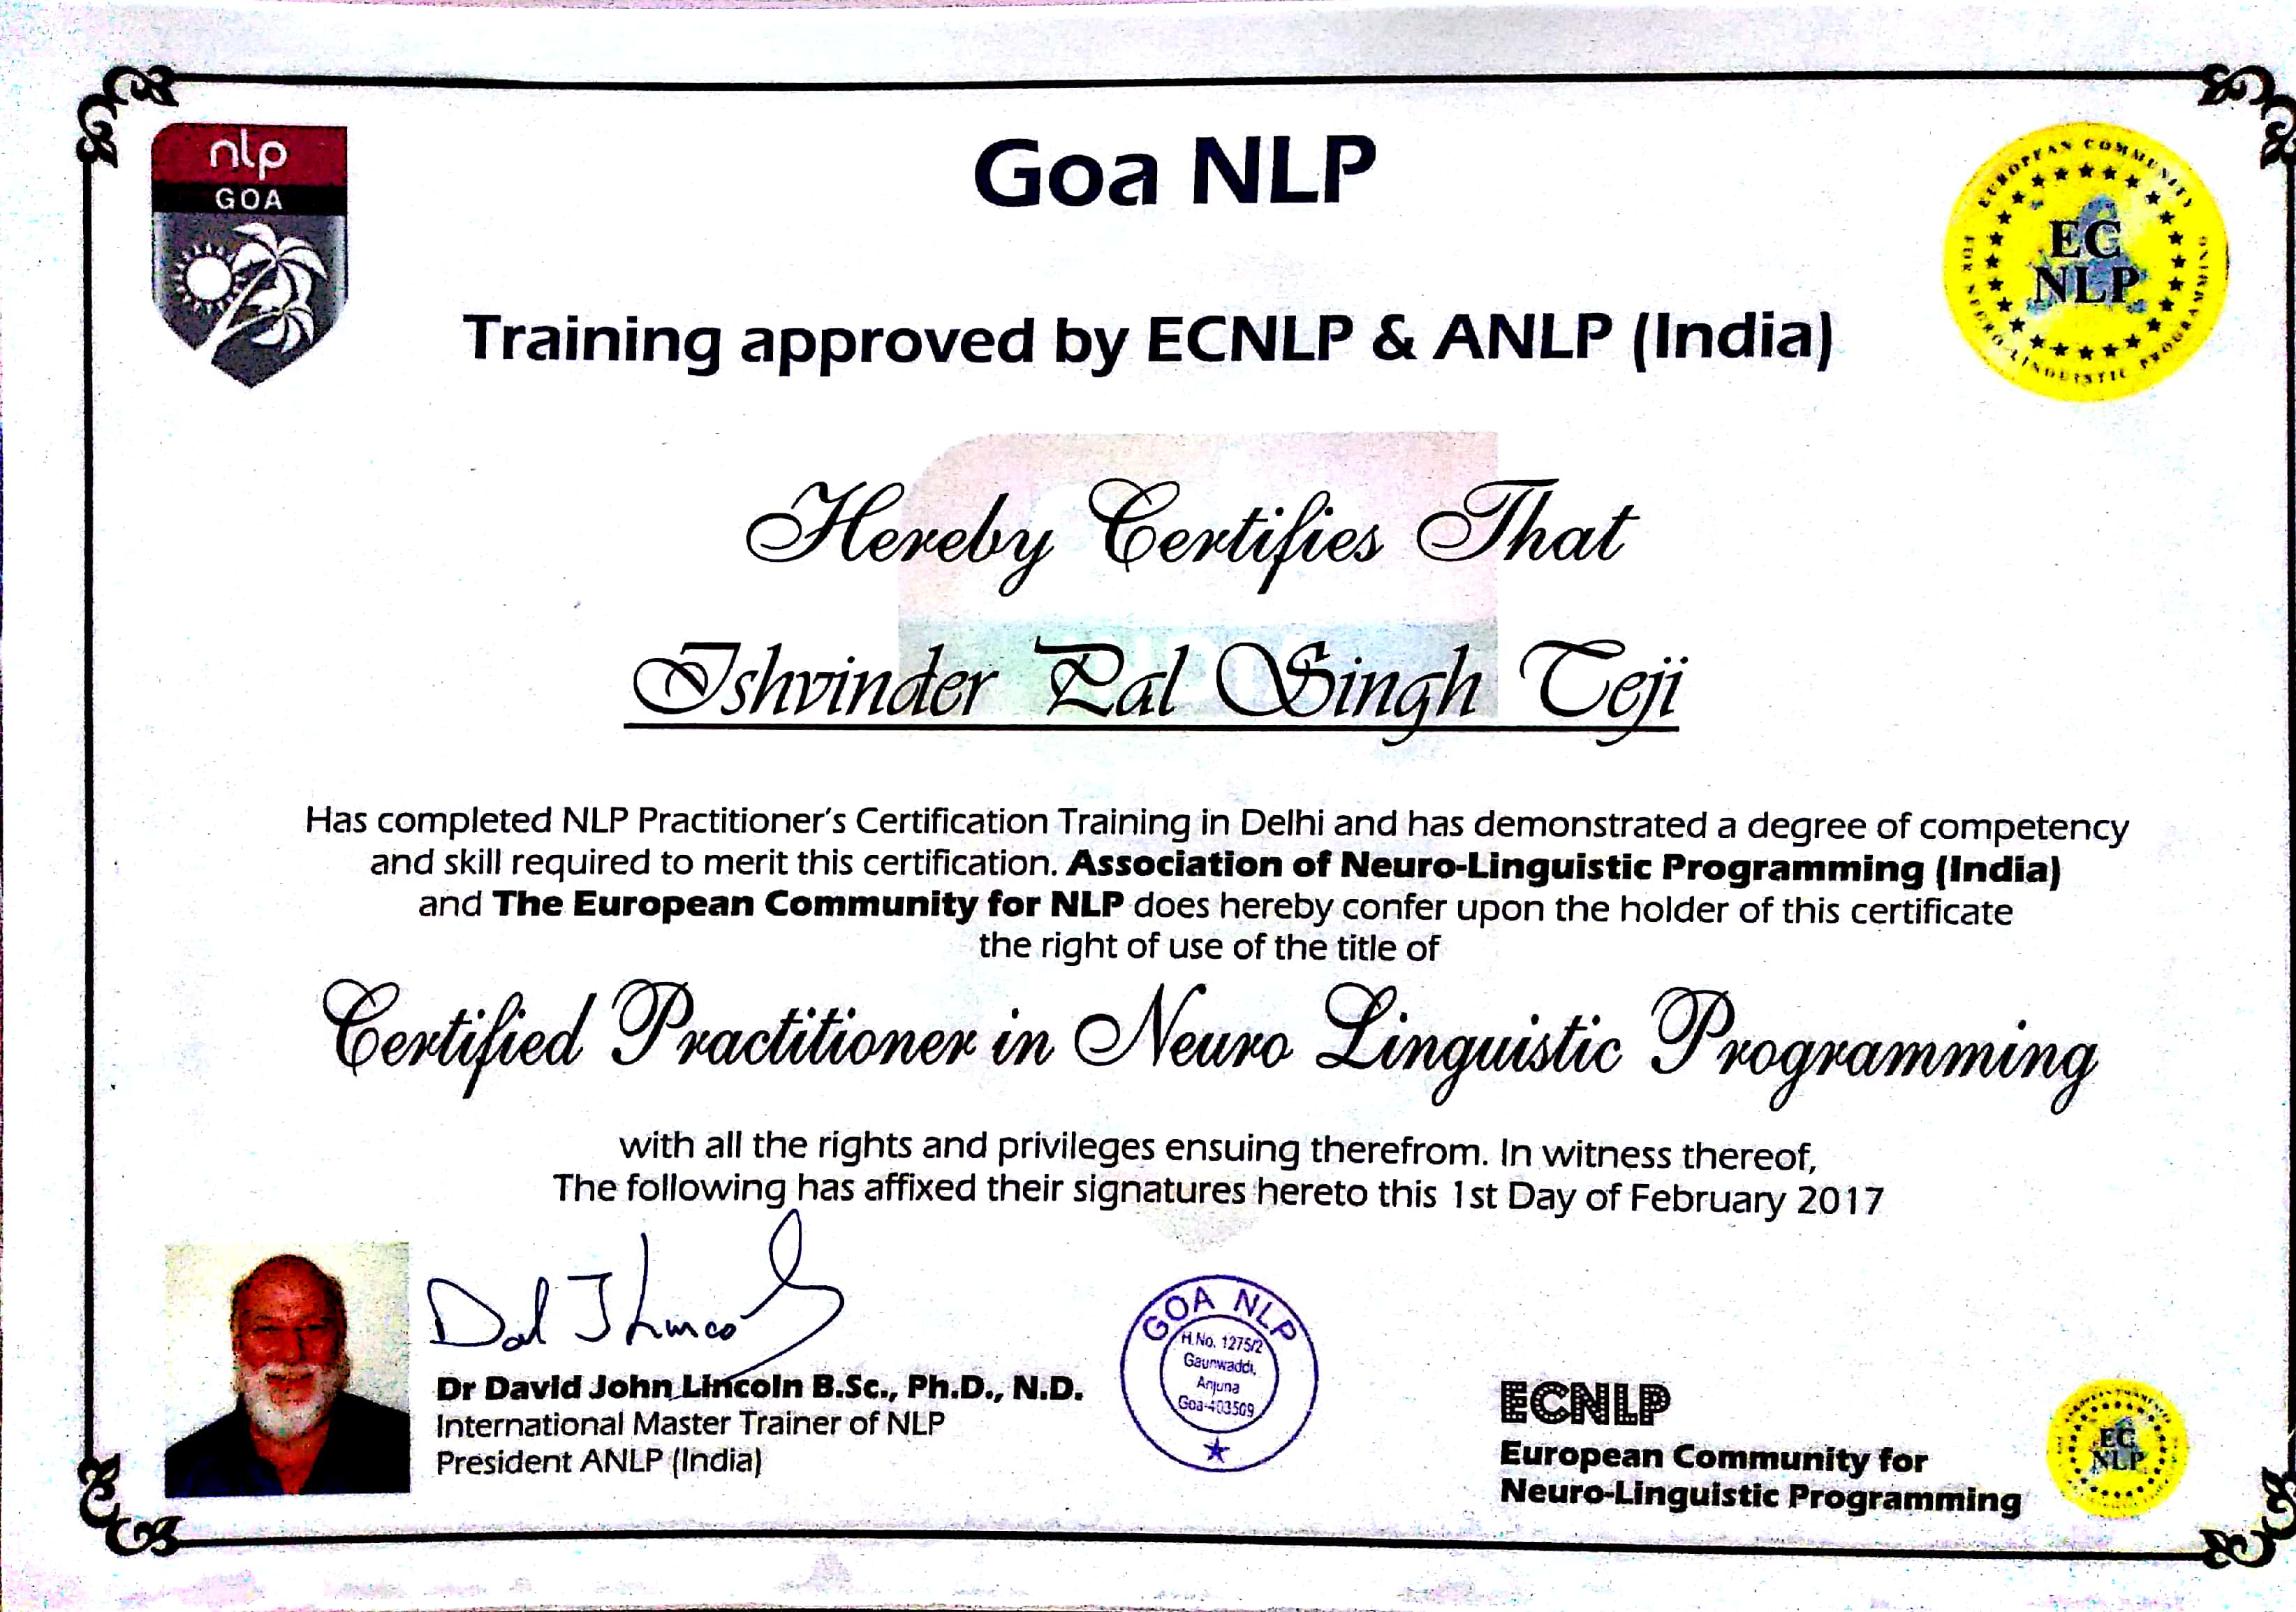 ips-yoga-certificate-laughter